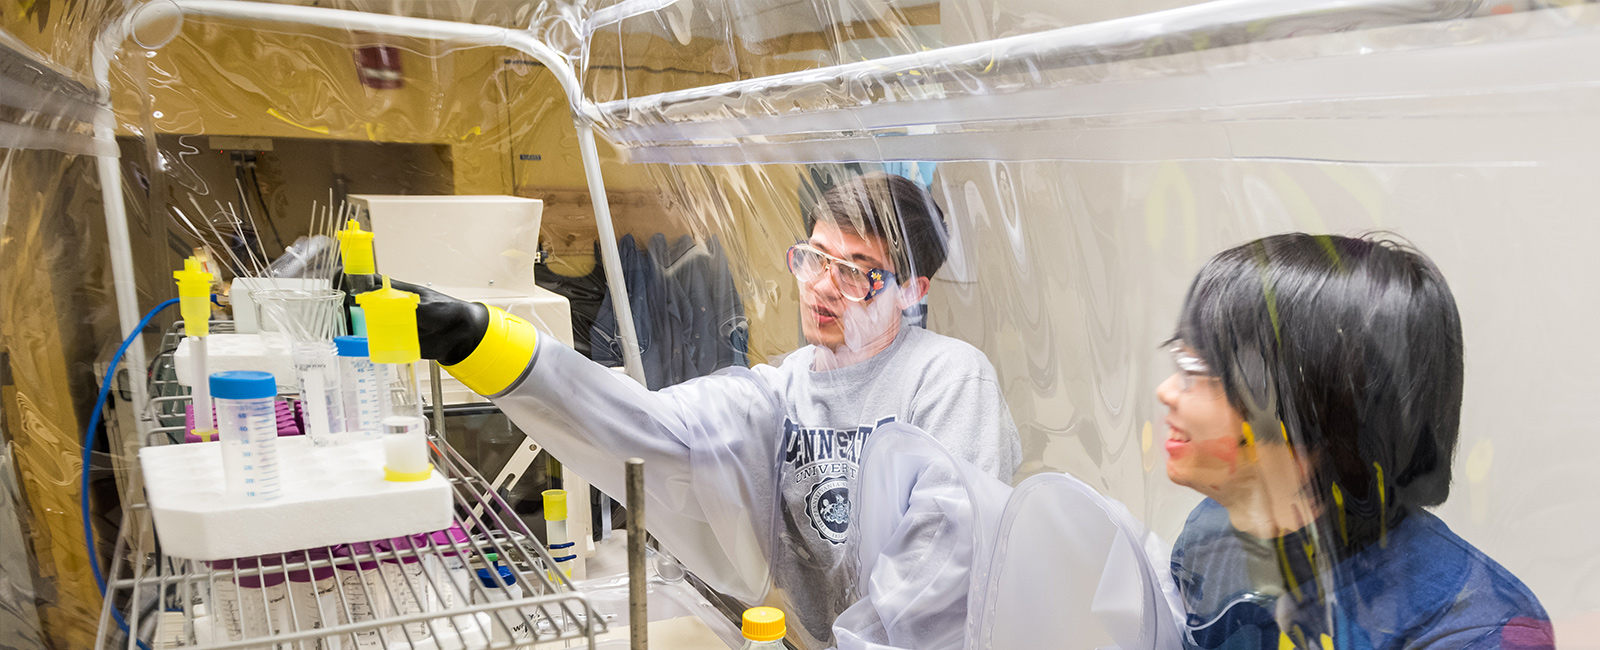 Two graduate students conduct research at a fume hood.